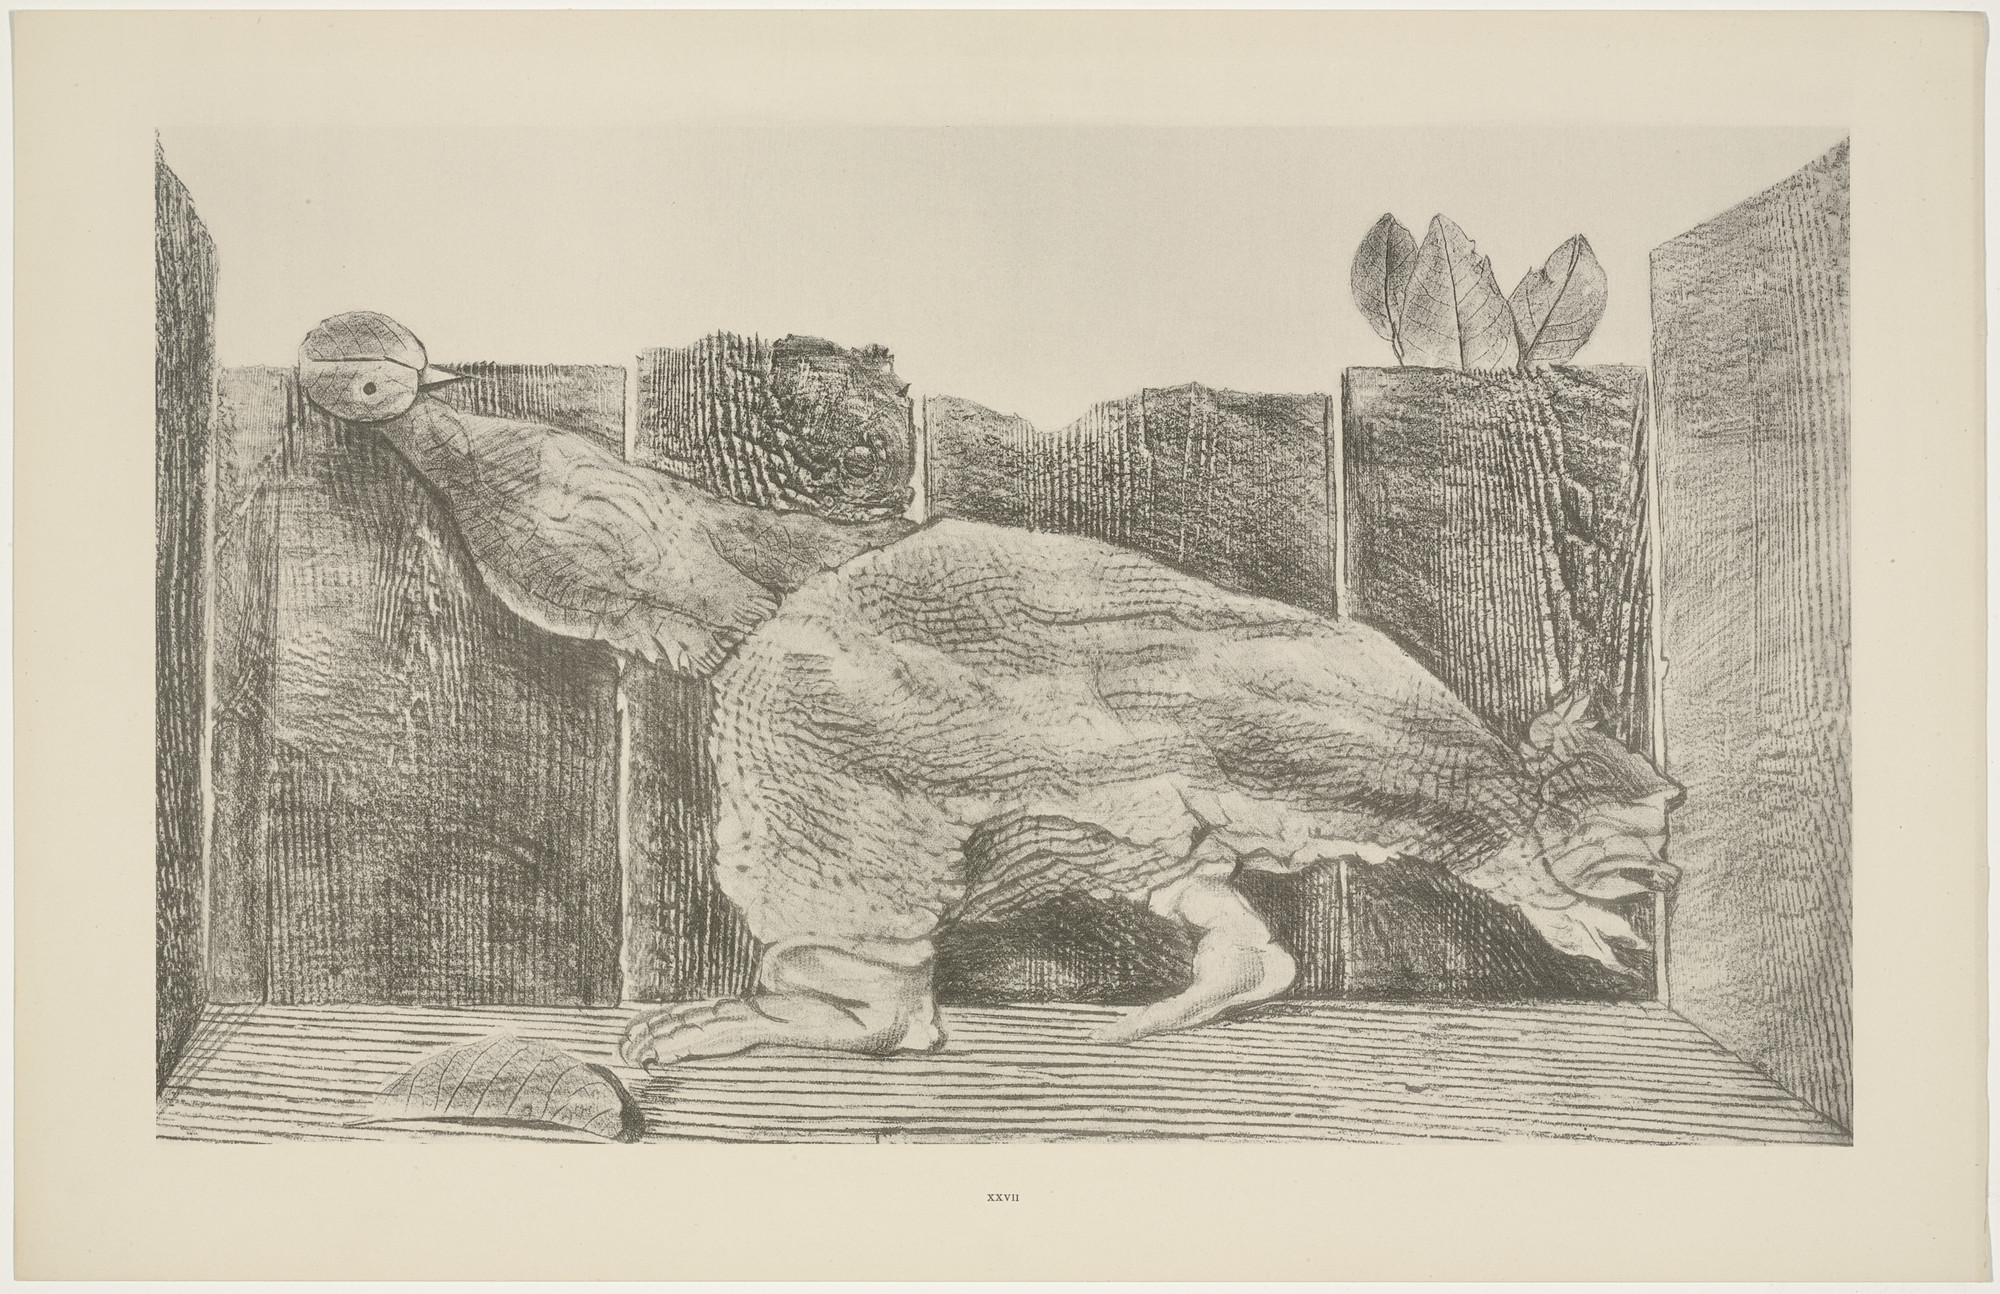 Max Ernst. In the Stable of the Sphinx (Dans l'écurie du sphinx) from Natural History (Histoire naturelle). c. 1925, published 1926